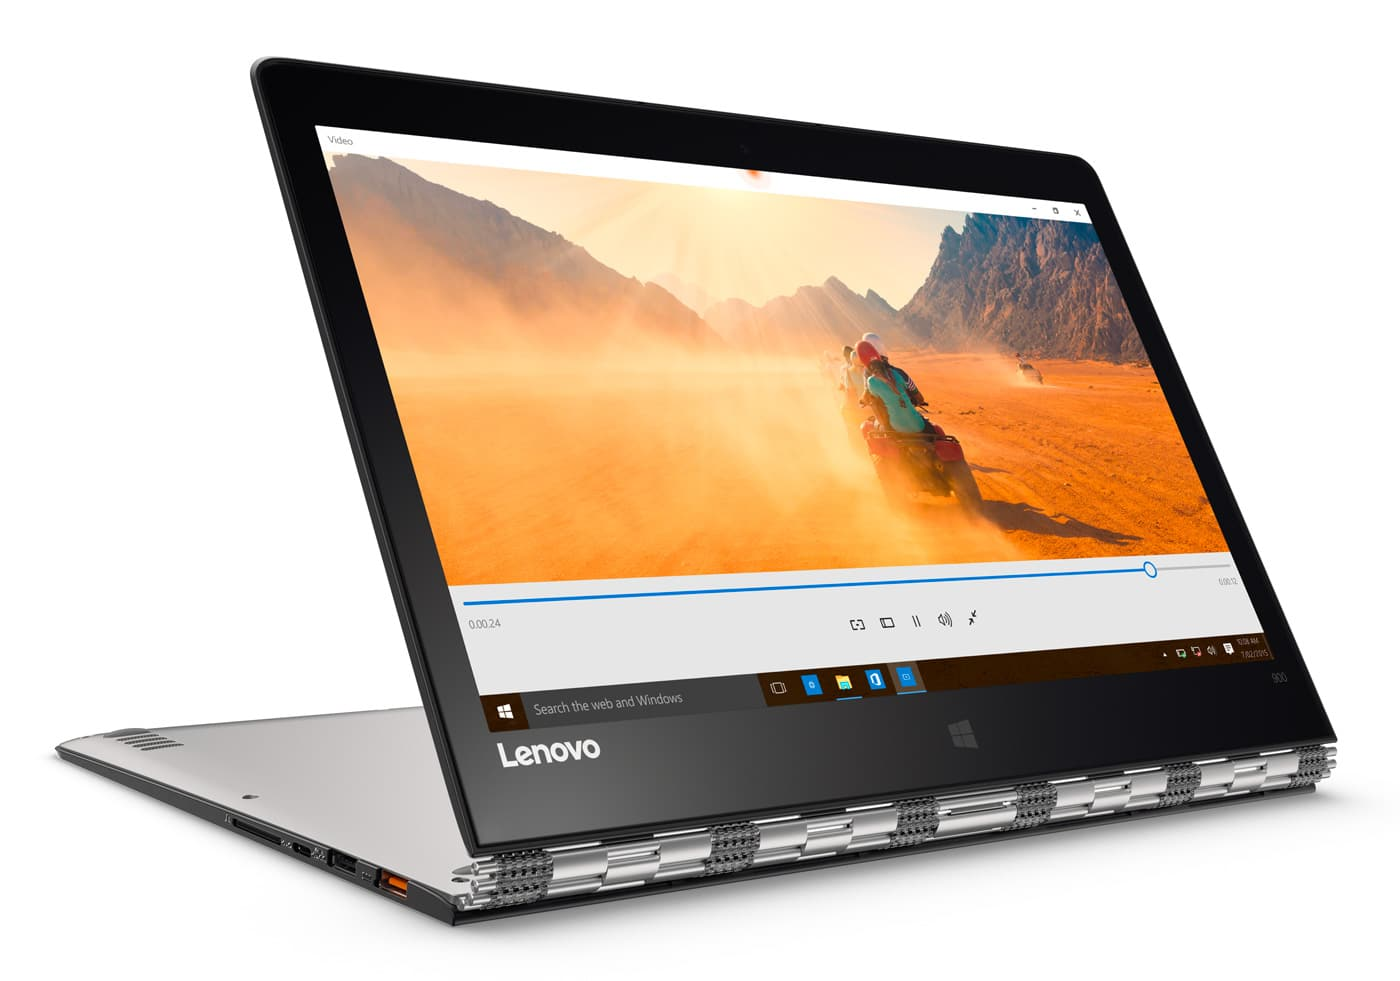 Lenovo Yoga 900-13ISK2, 13 pouces convertible SSD 1To QHD+ tactile i7 Iris 1599€